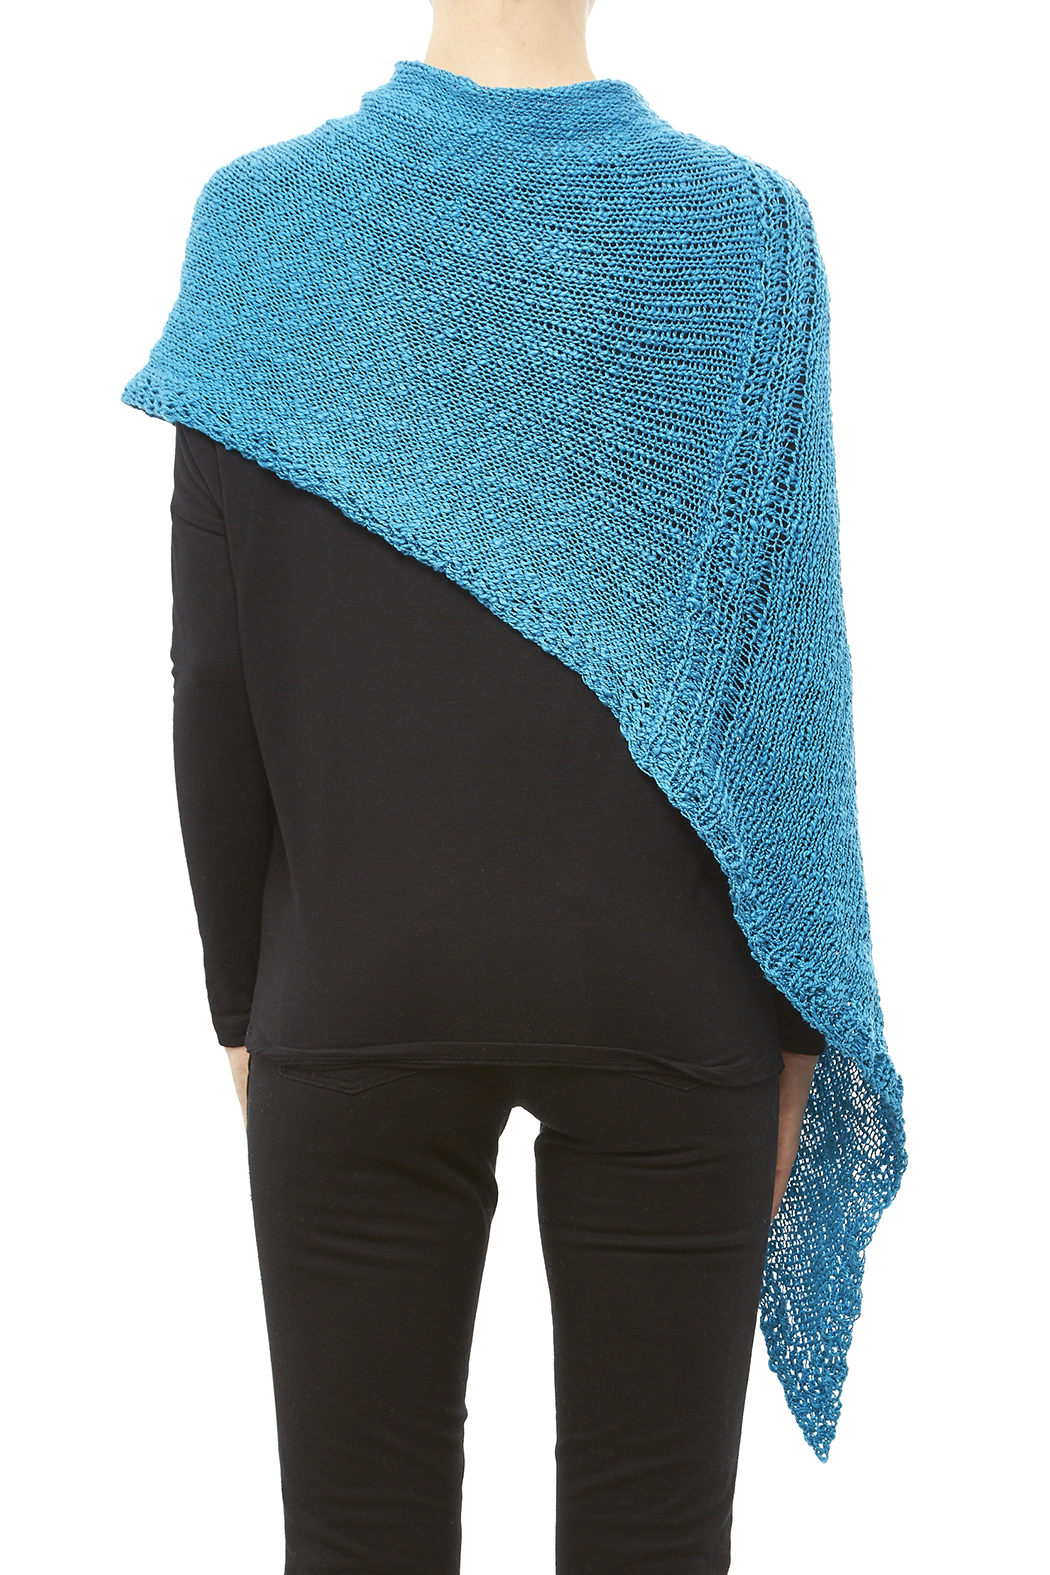 DC KNITS Cotton Chameleon Wrap - Back Cropped Image